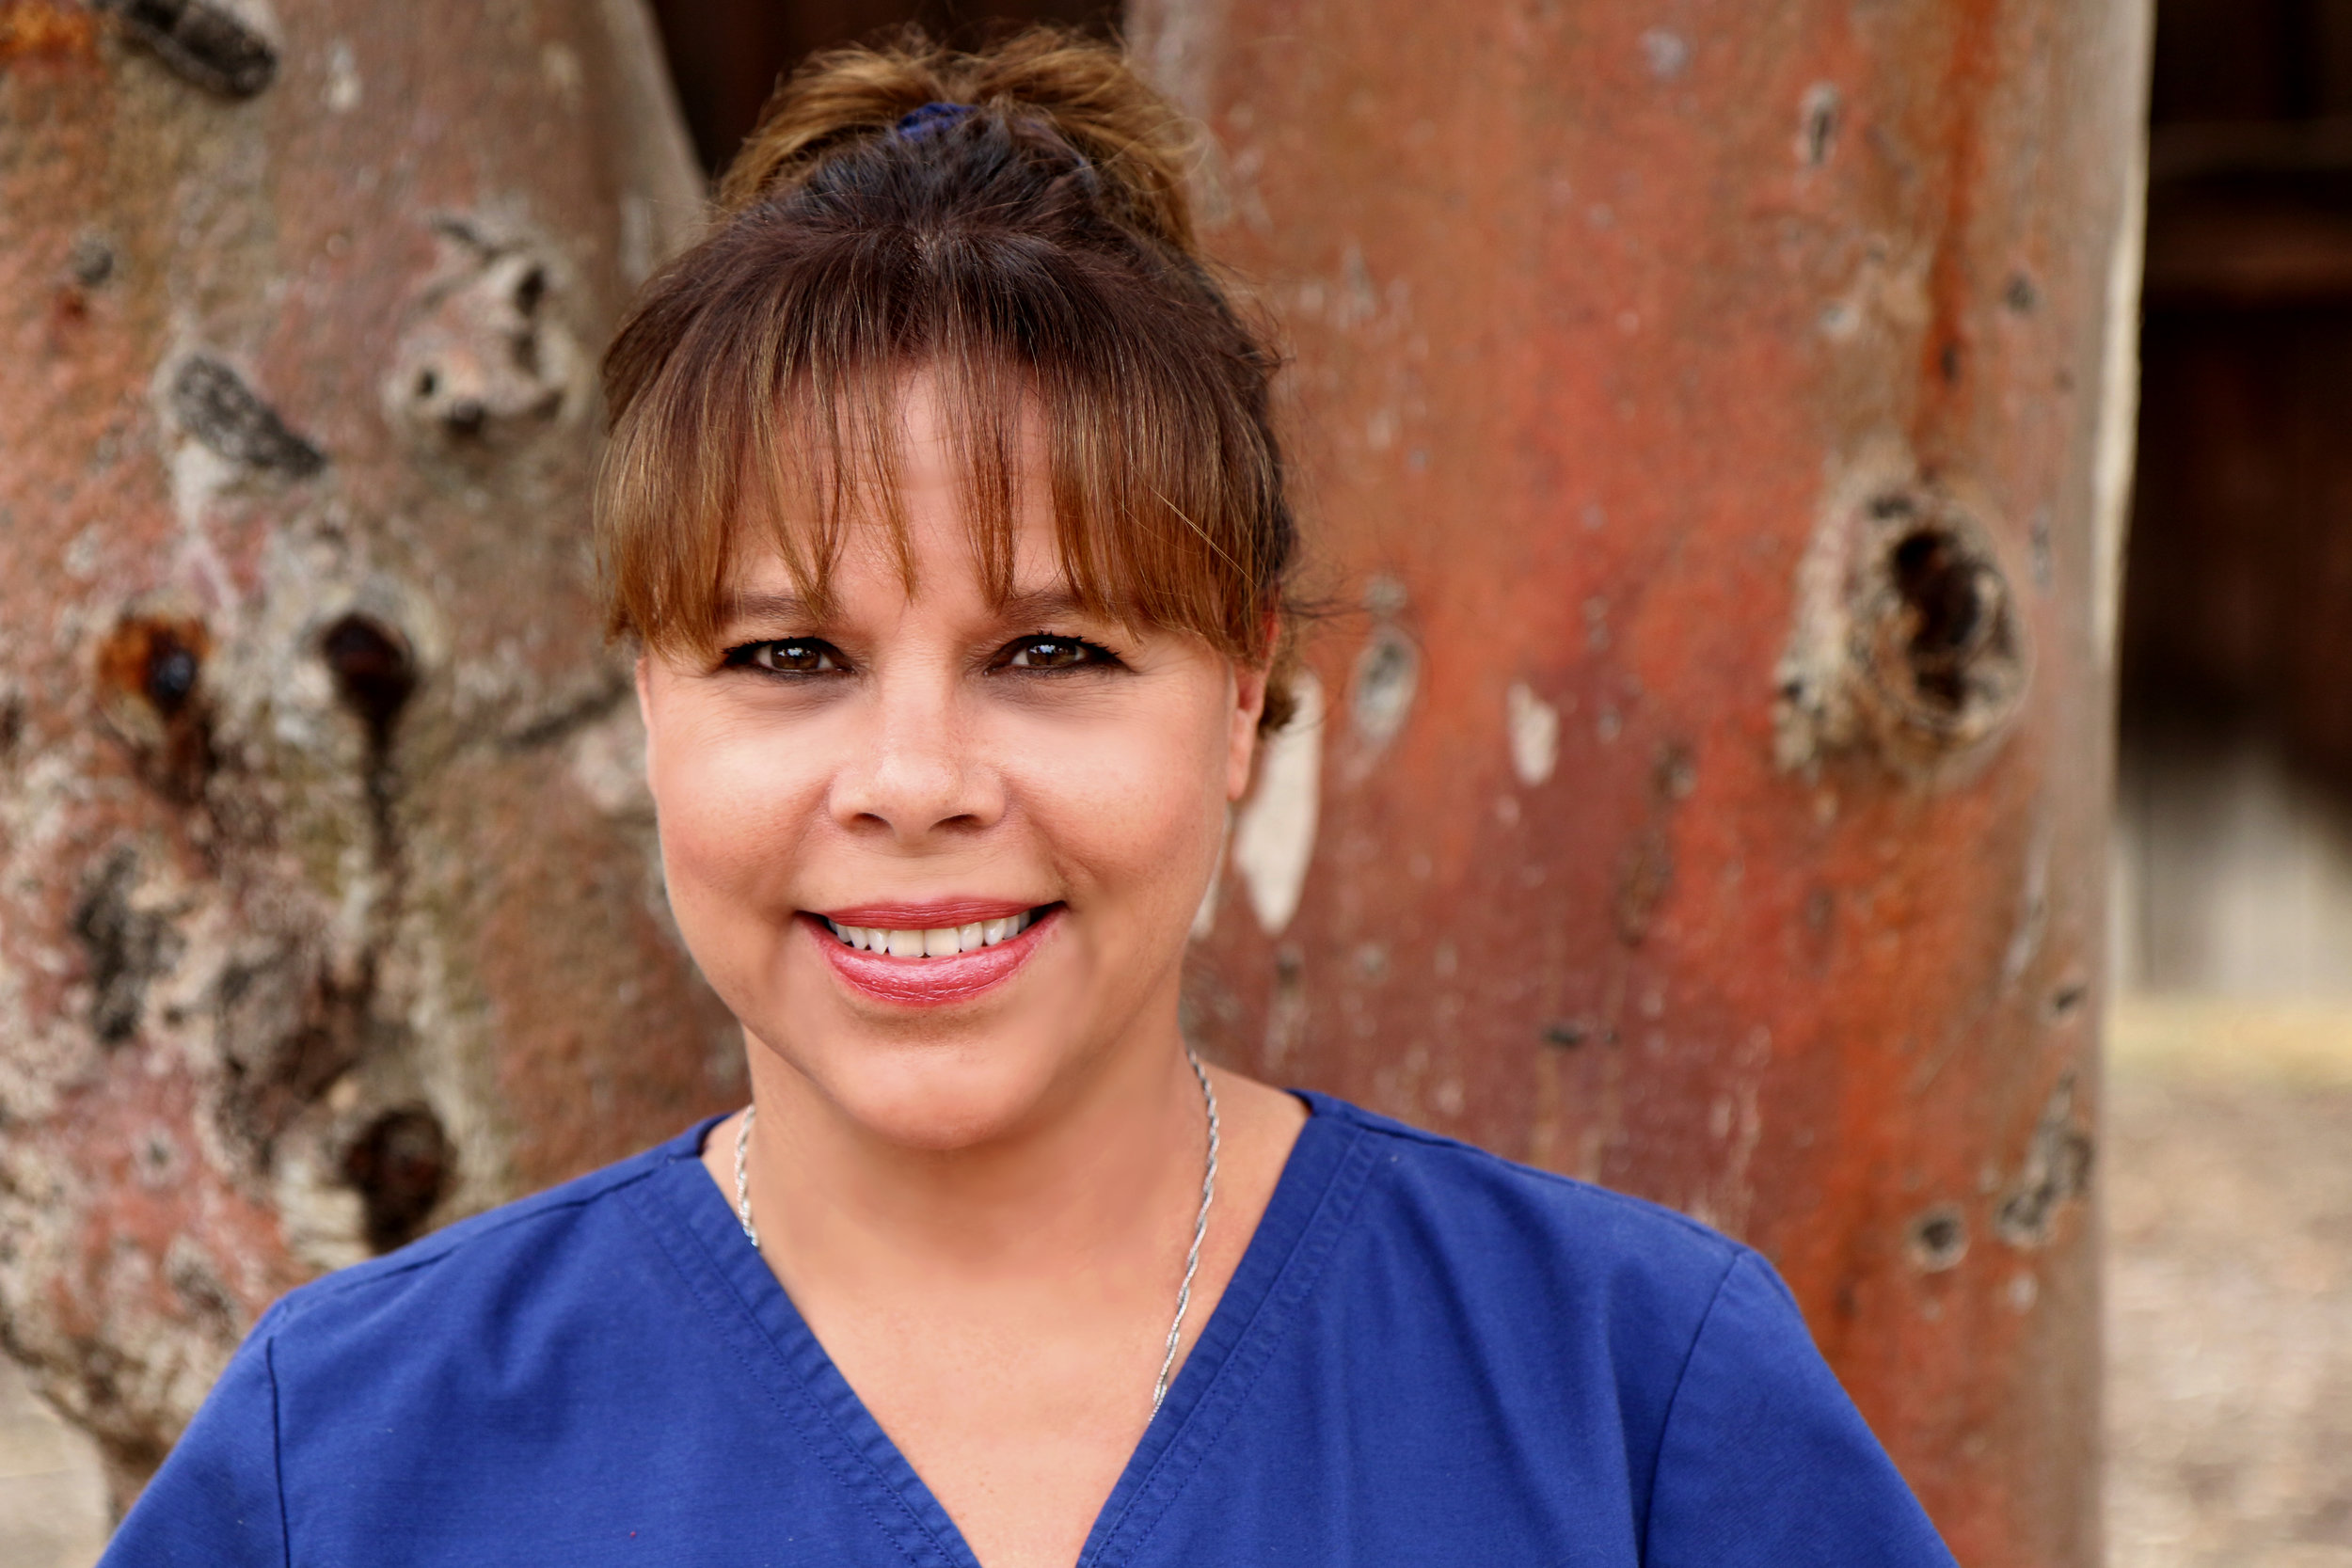 Laurette Weissert   Laurette is a Southern California native. She has been a registered dental assistant for over 20 years. She has been assisting with Dr. Holyoak for over four of those years. Laurette's warm chair-side manner puts patients at ease and her positive attitude is contagious. She sees the good in every situation and is passionate about taking care of people and ensuring their comfort. Laurette loves spending time with her family and pets. She also loves to cook and loves rockin' to the oldies on her jukebox at home.